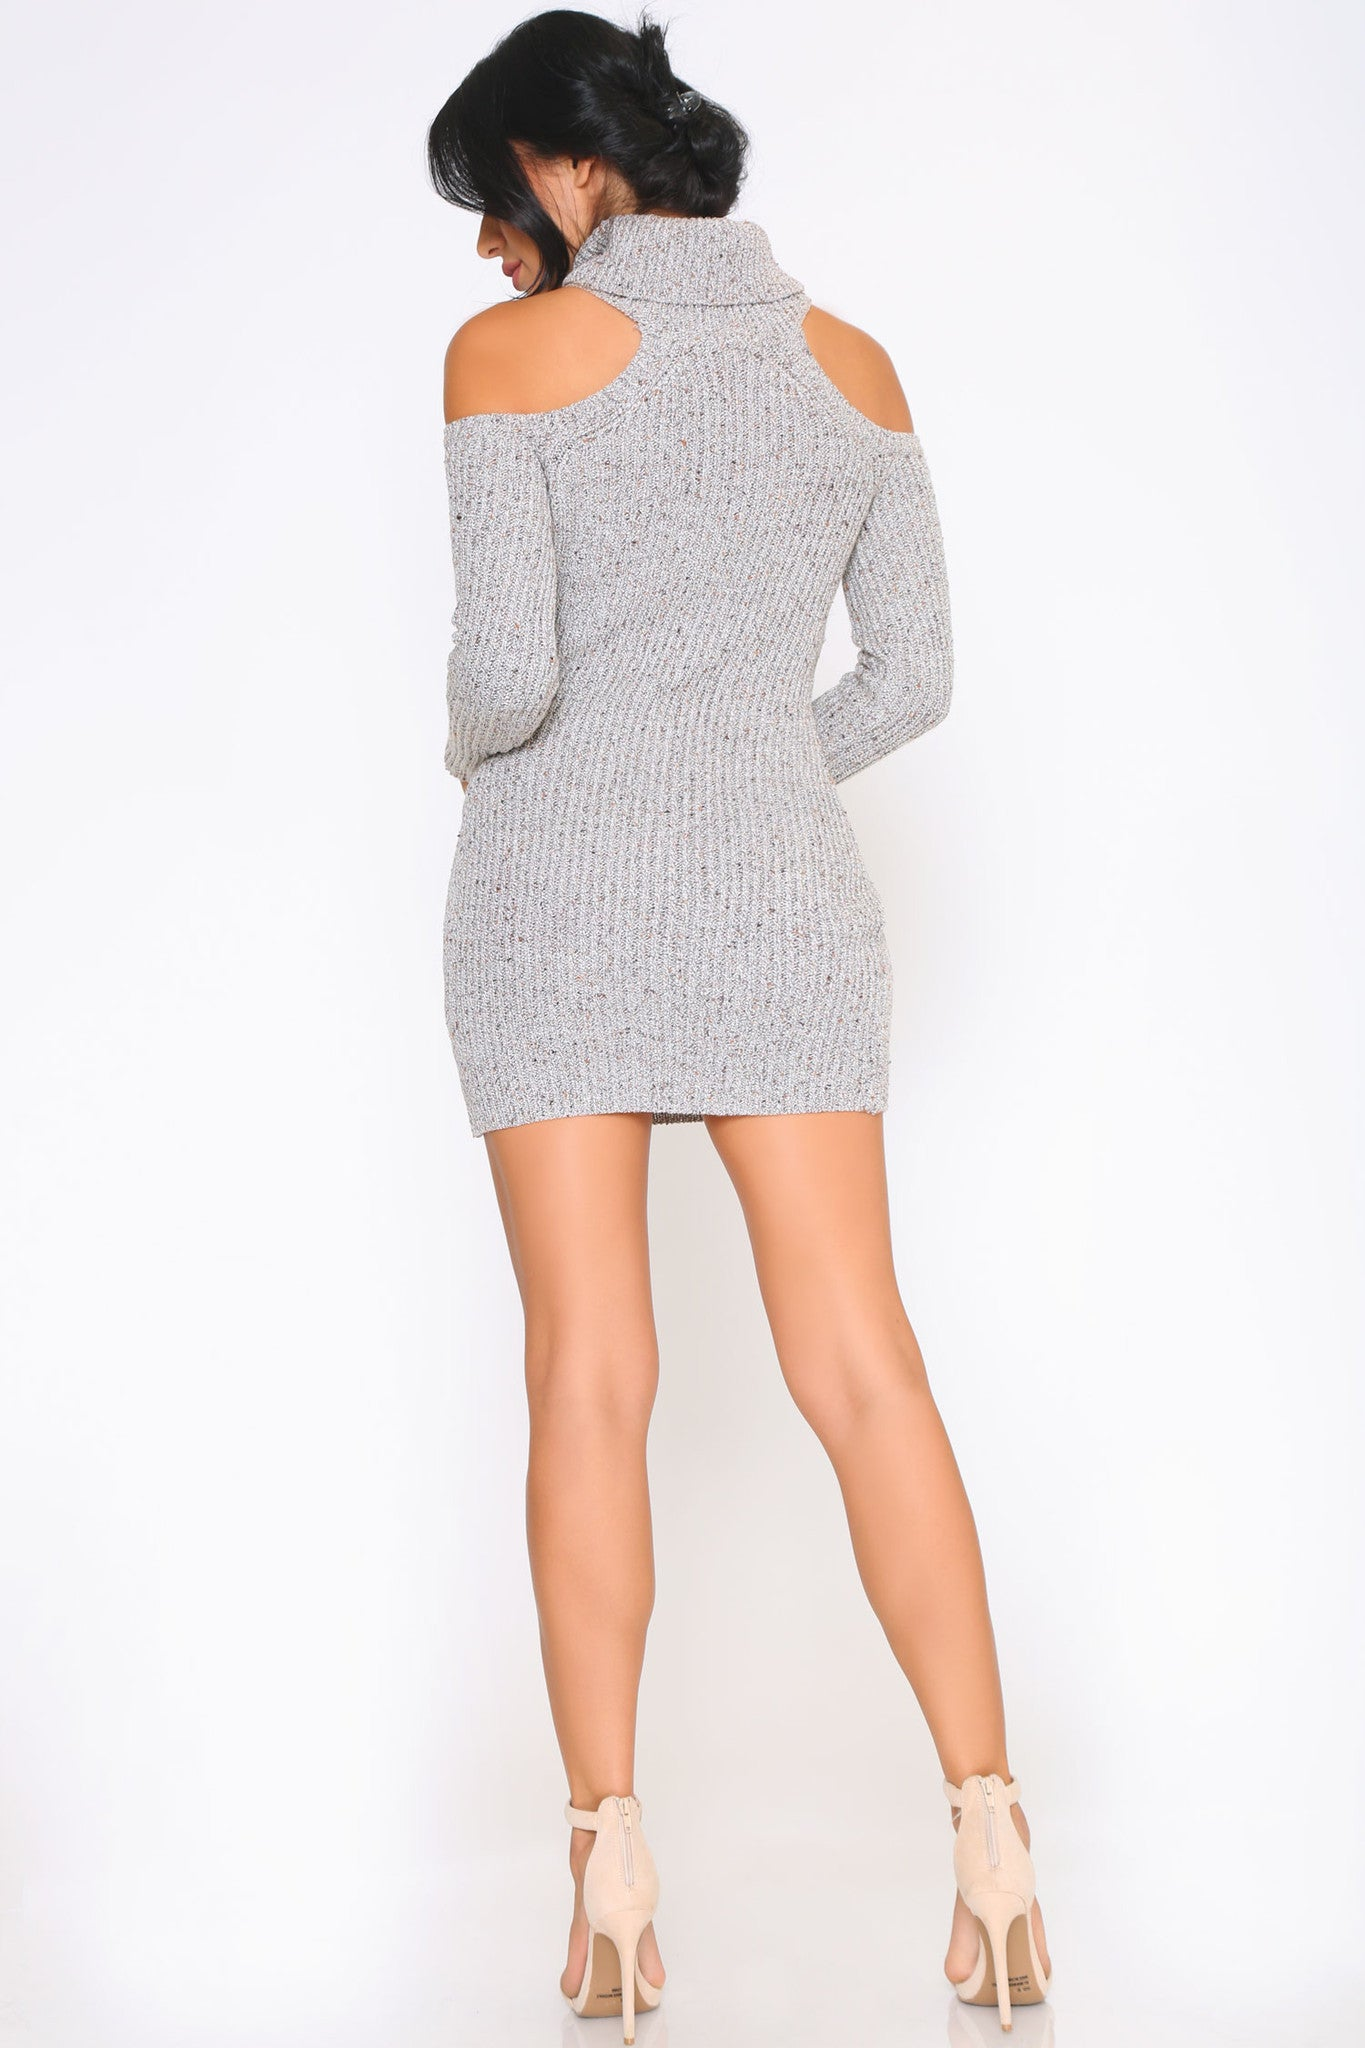 HAZEL SWEATER DRESS - Glam Envy - 3